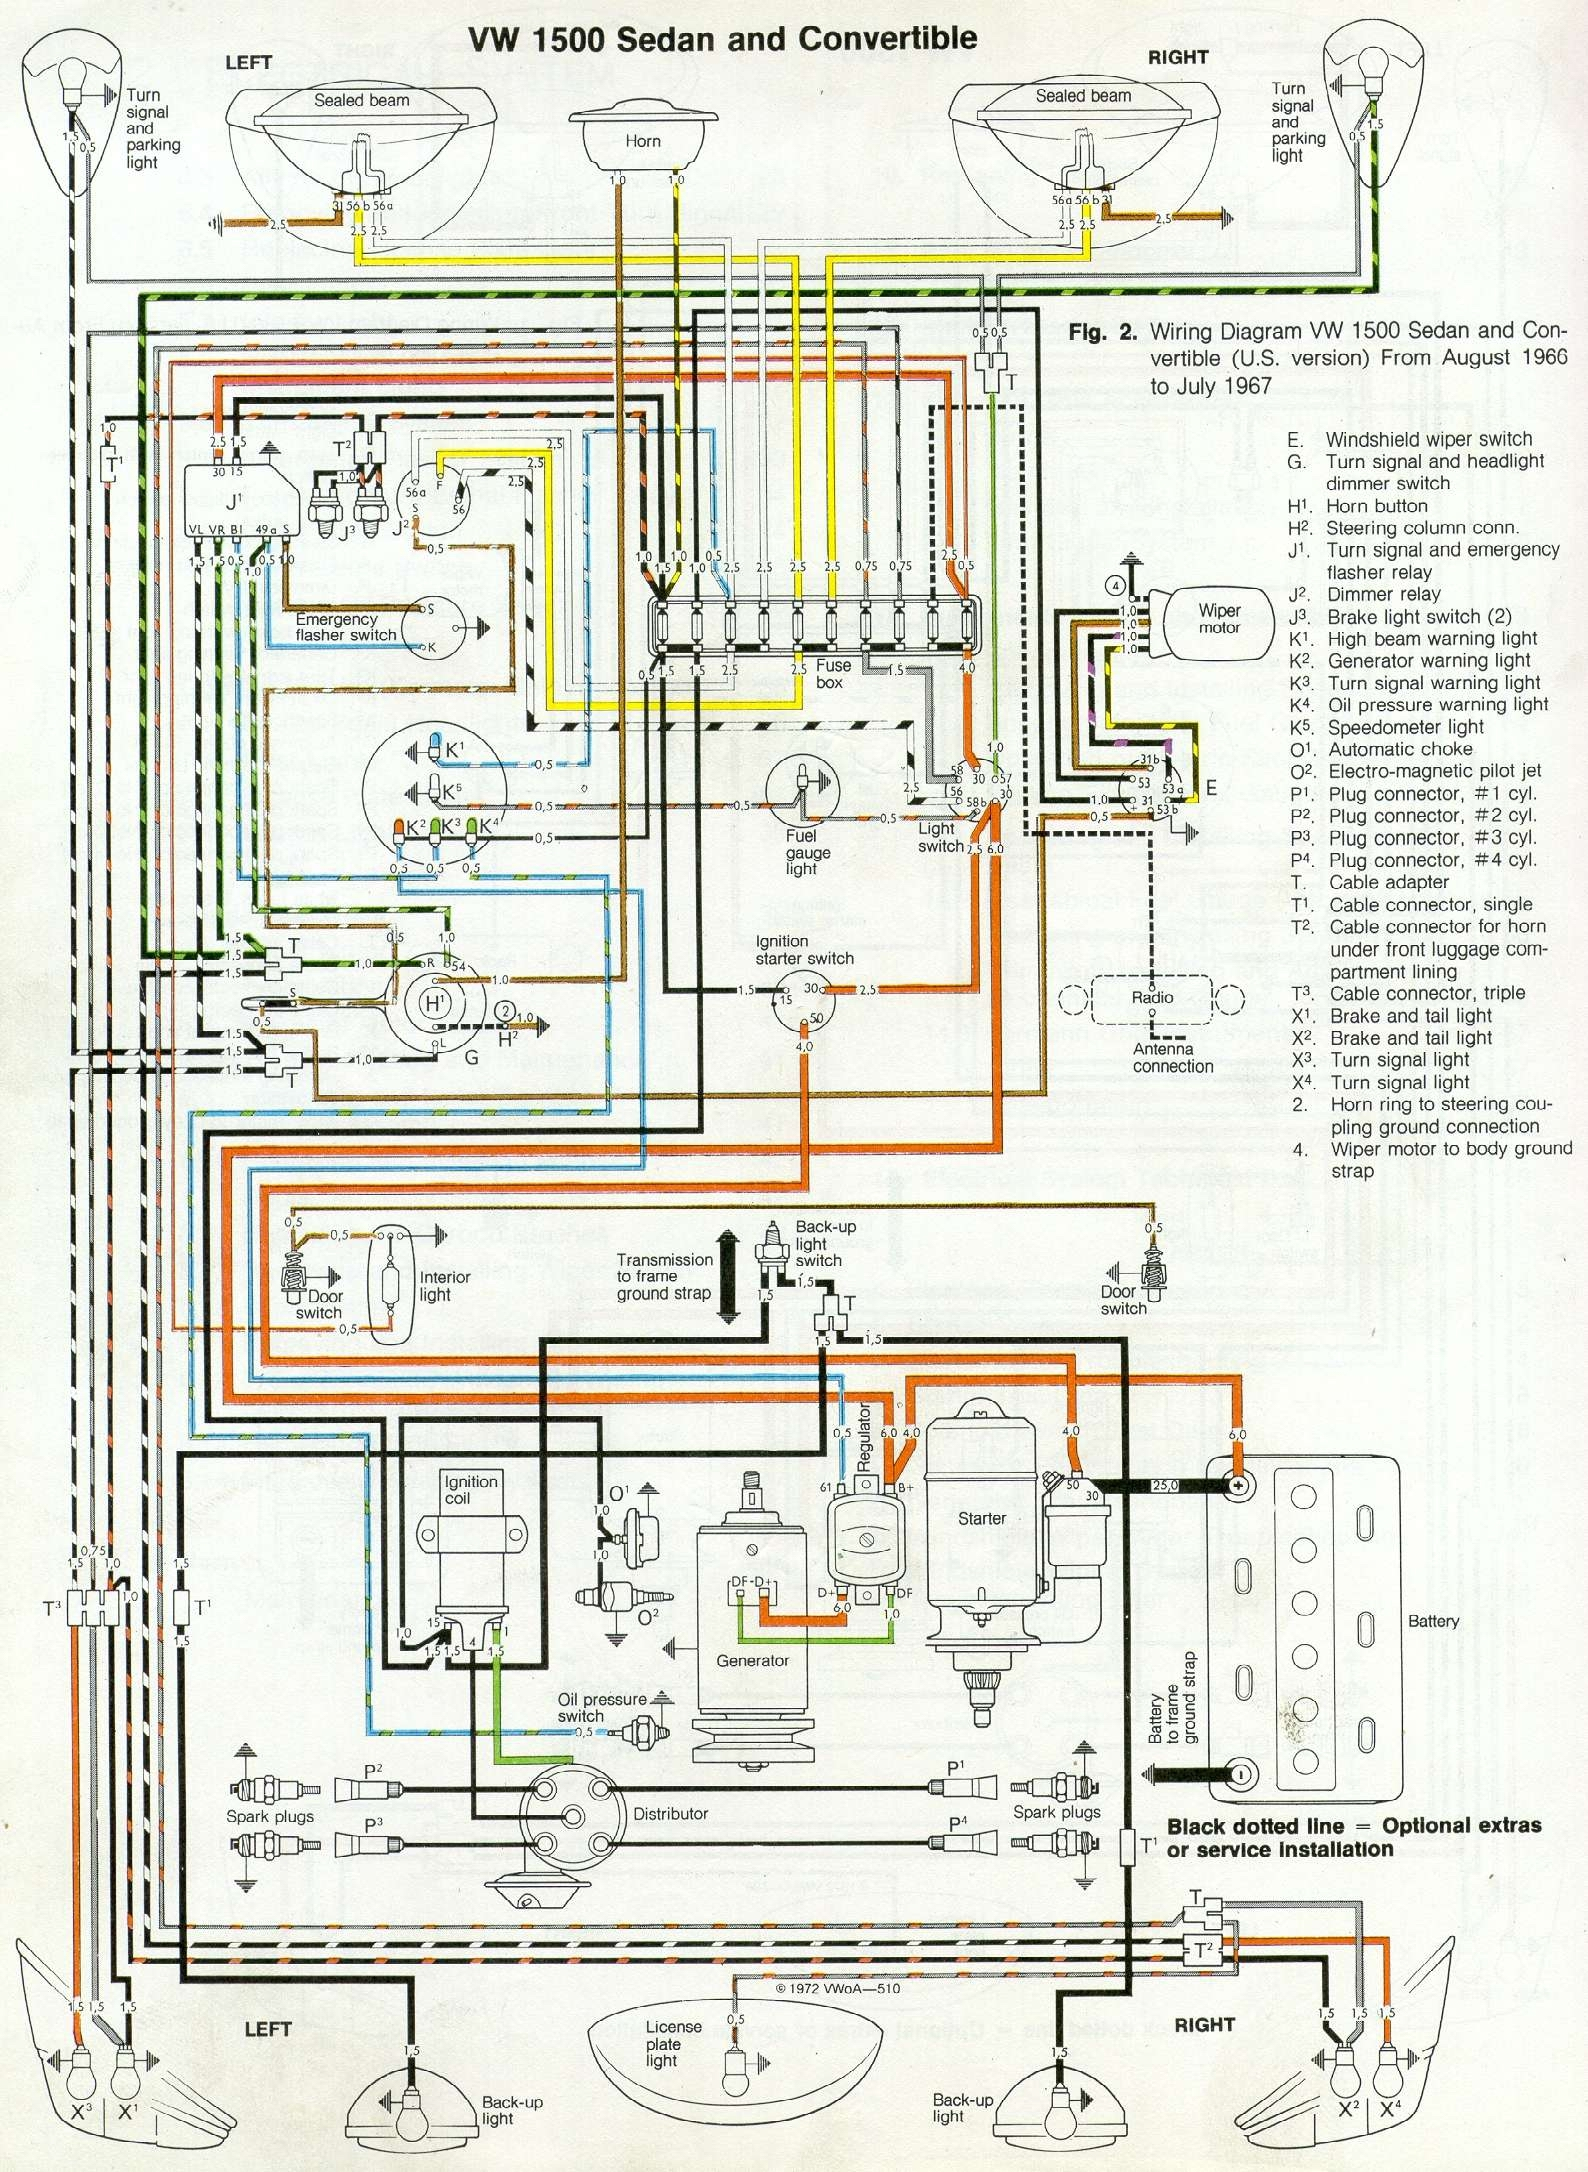 66 and 67 vw beetle wiring diagram 1967 vw beetle rh 1967beetle com 1971 VW  Super Beetle Fuse Diagram Volkswagen Beetle Wiring Diagram